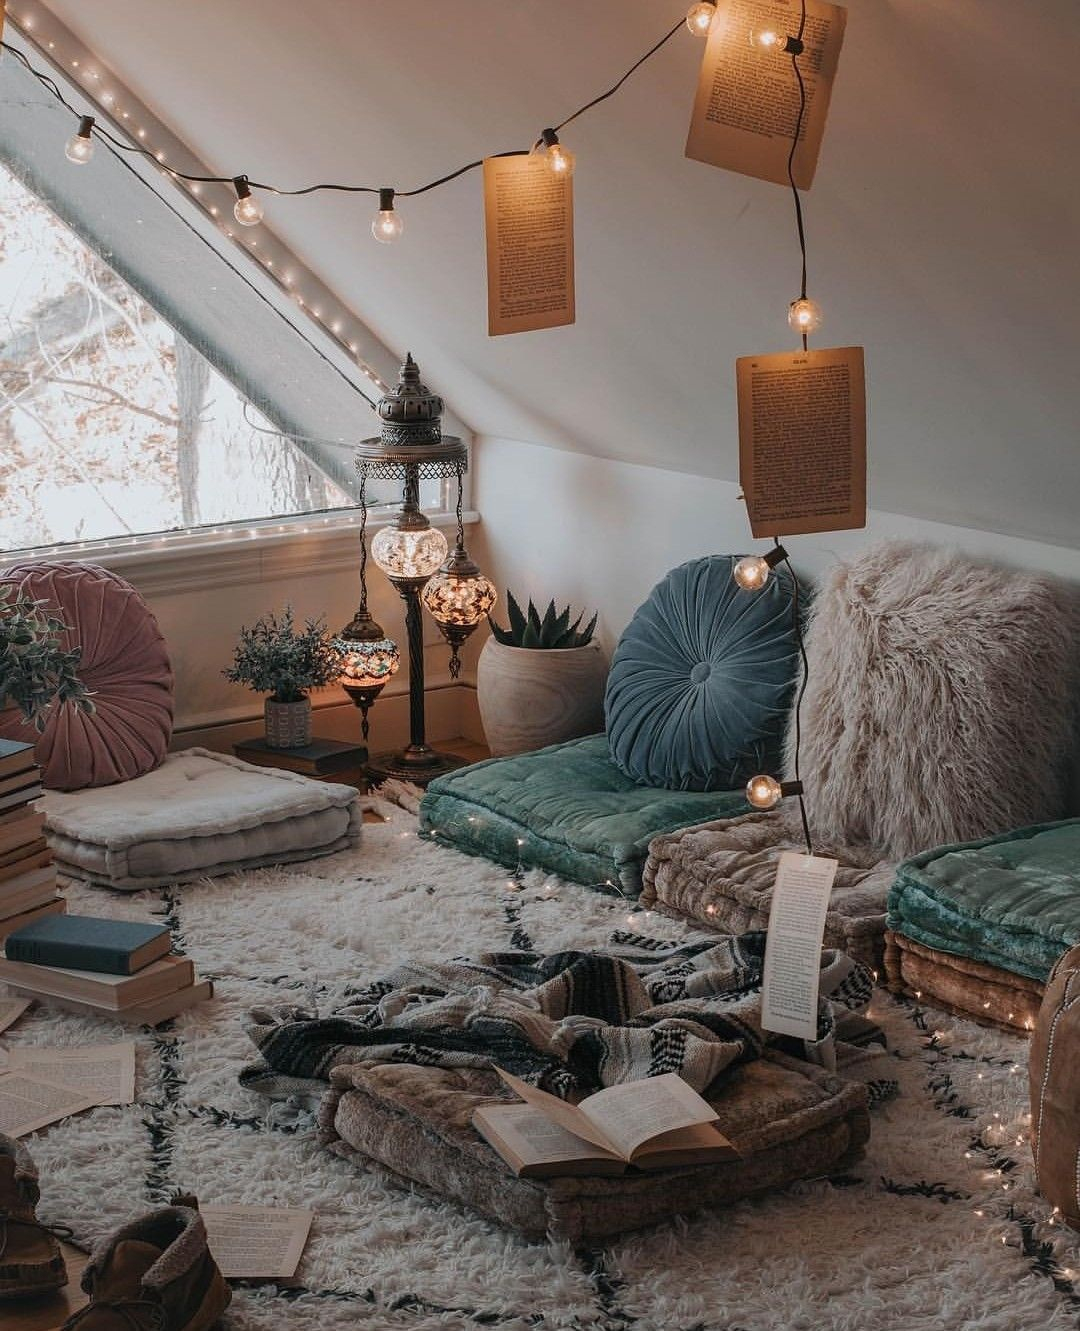 Pin By Anna Wade On Interior Design In 2019